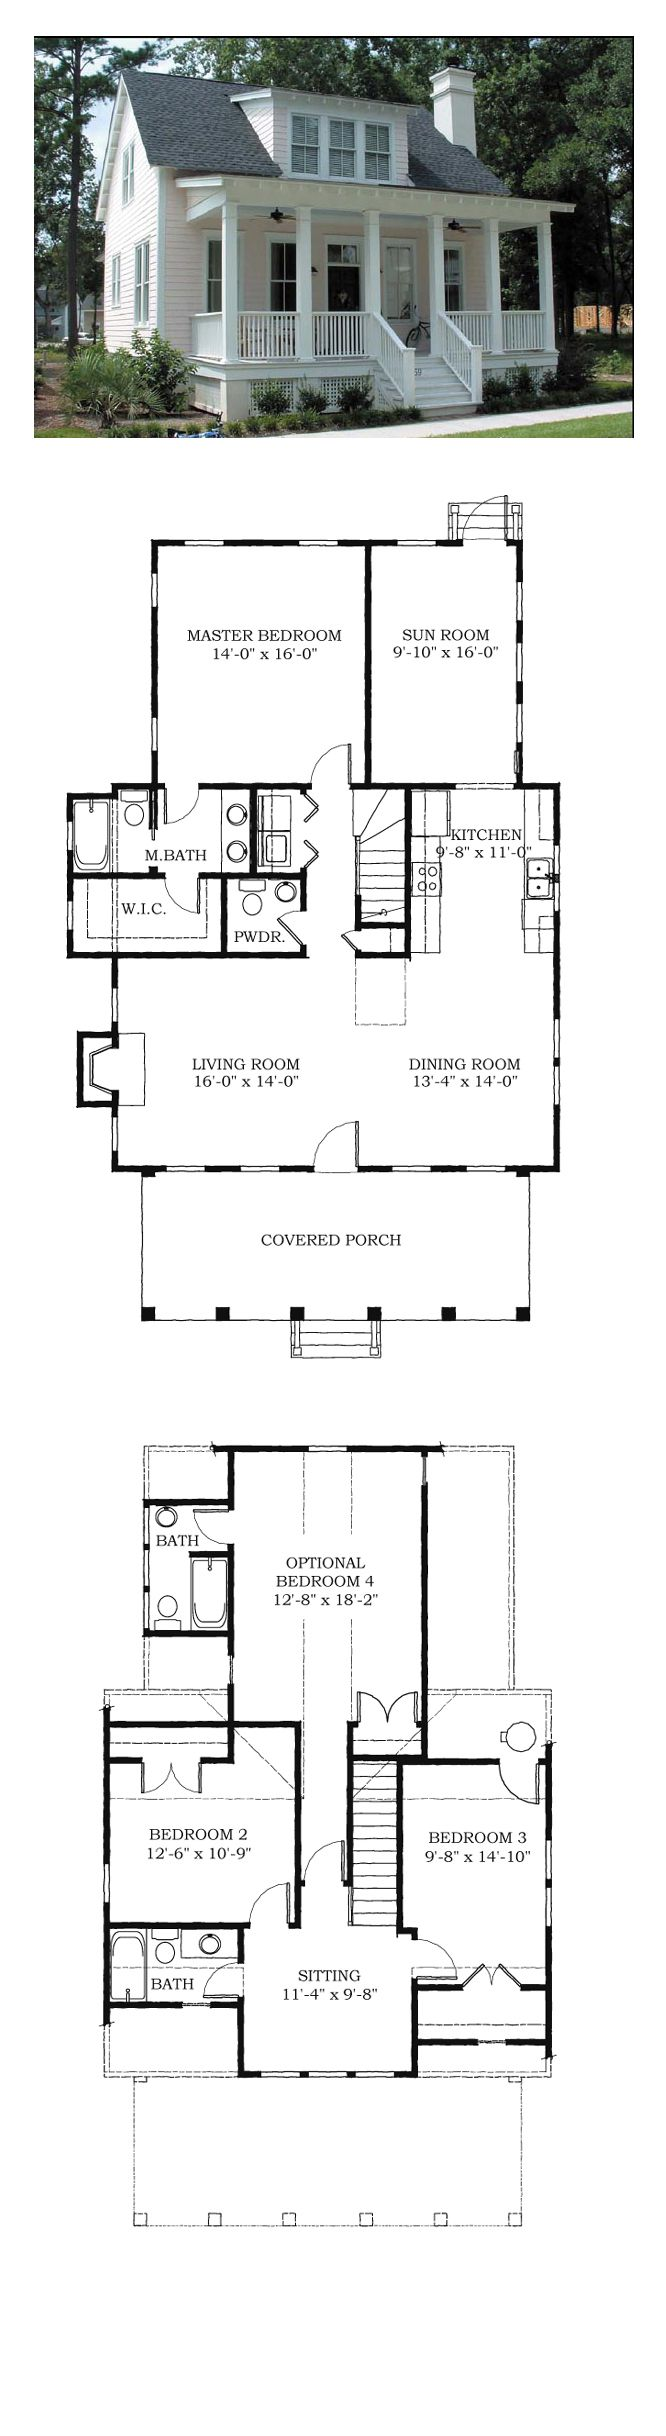 COOL House Plan ID: Total Living Area: 1783 Sq., 4 Bedrooms And Bathrooms.  By Dakota Smith